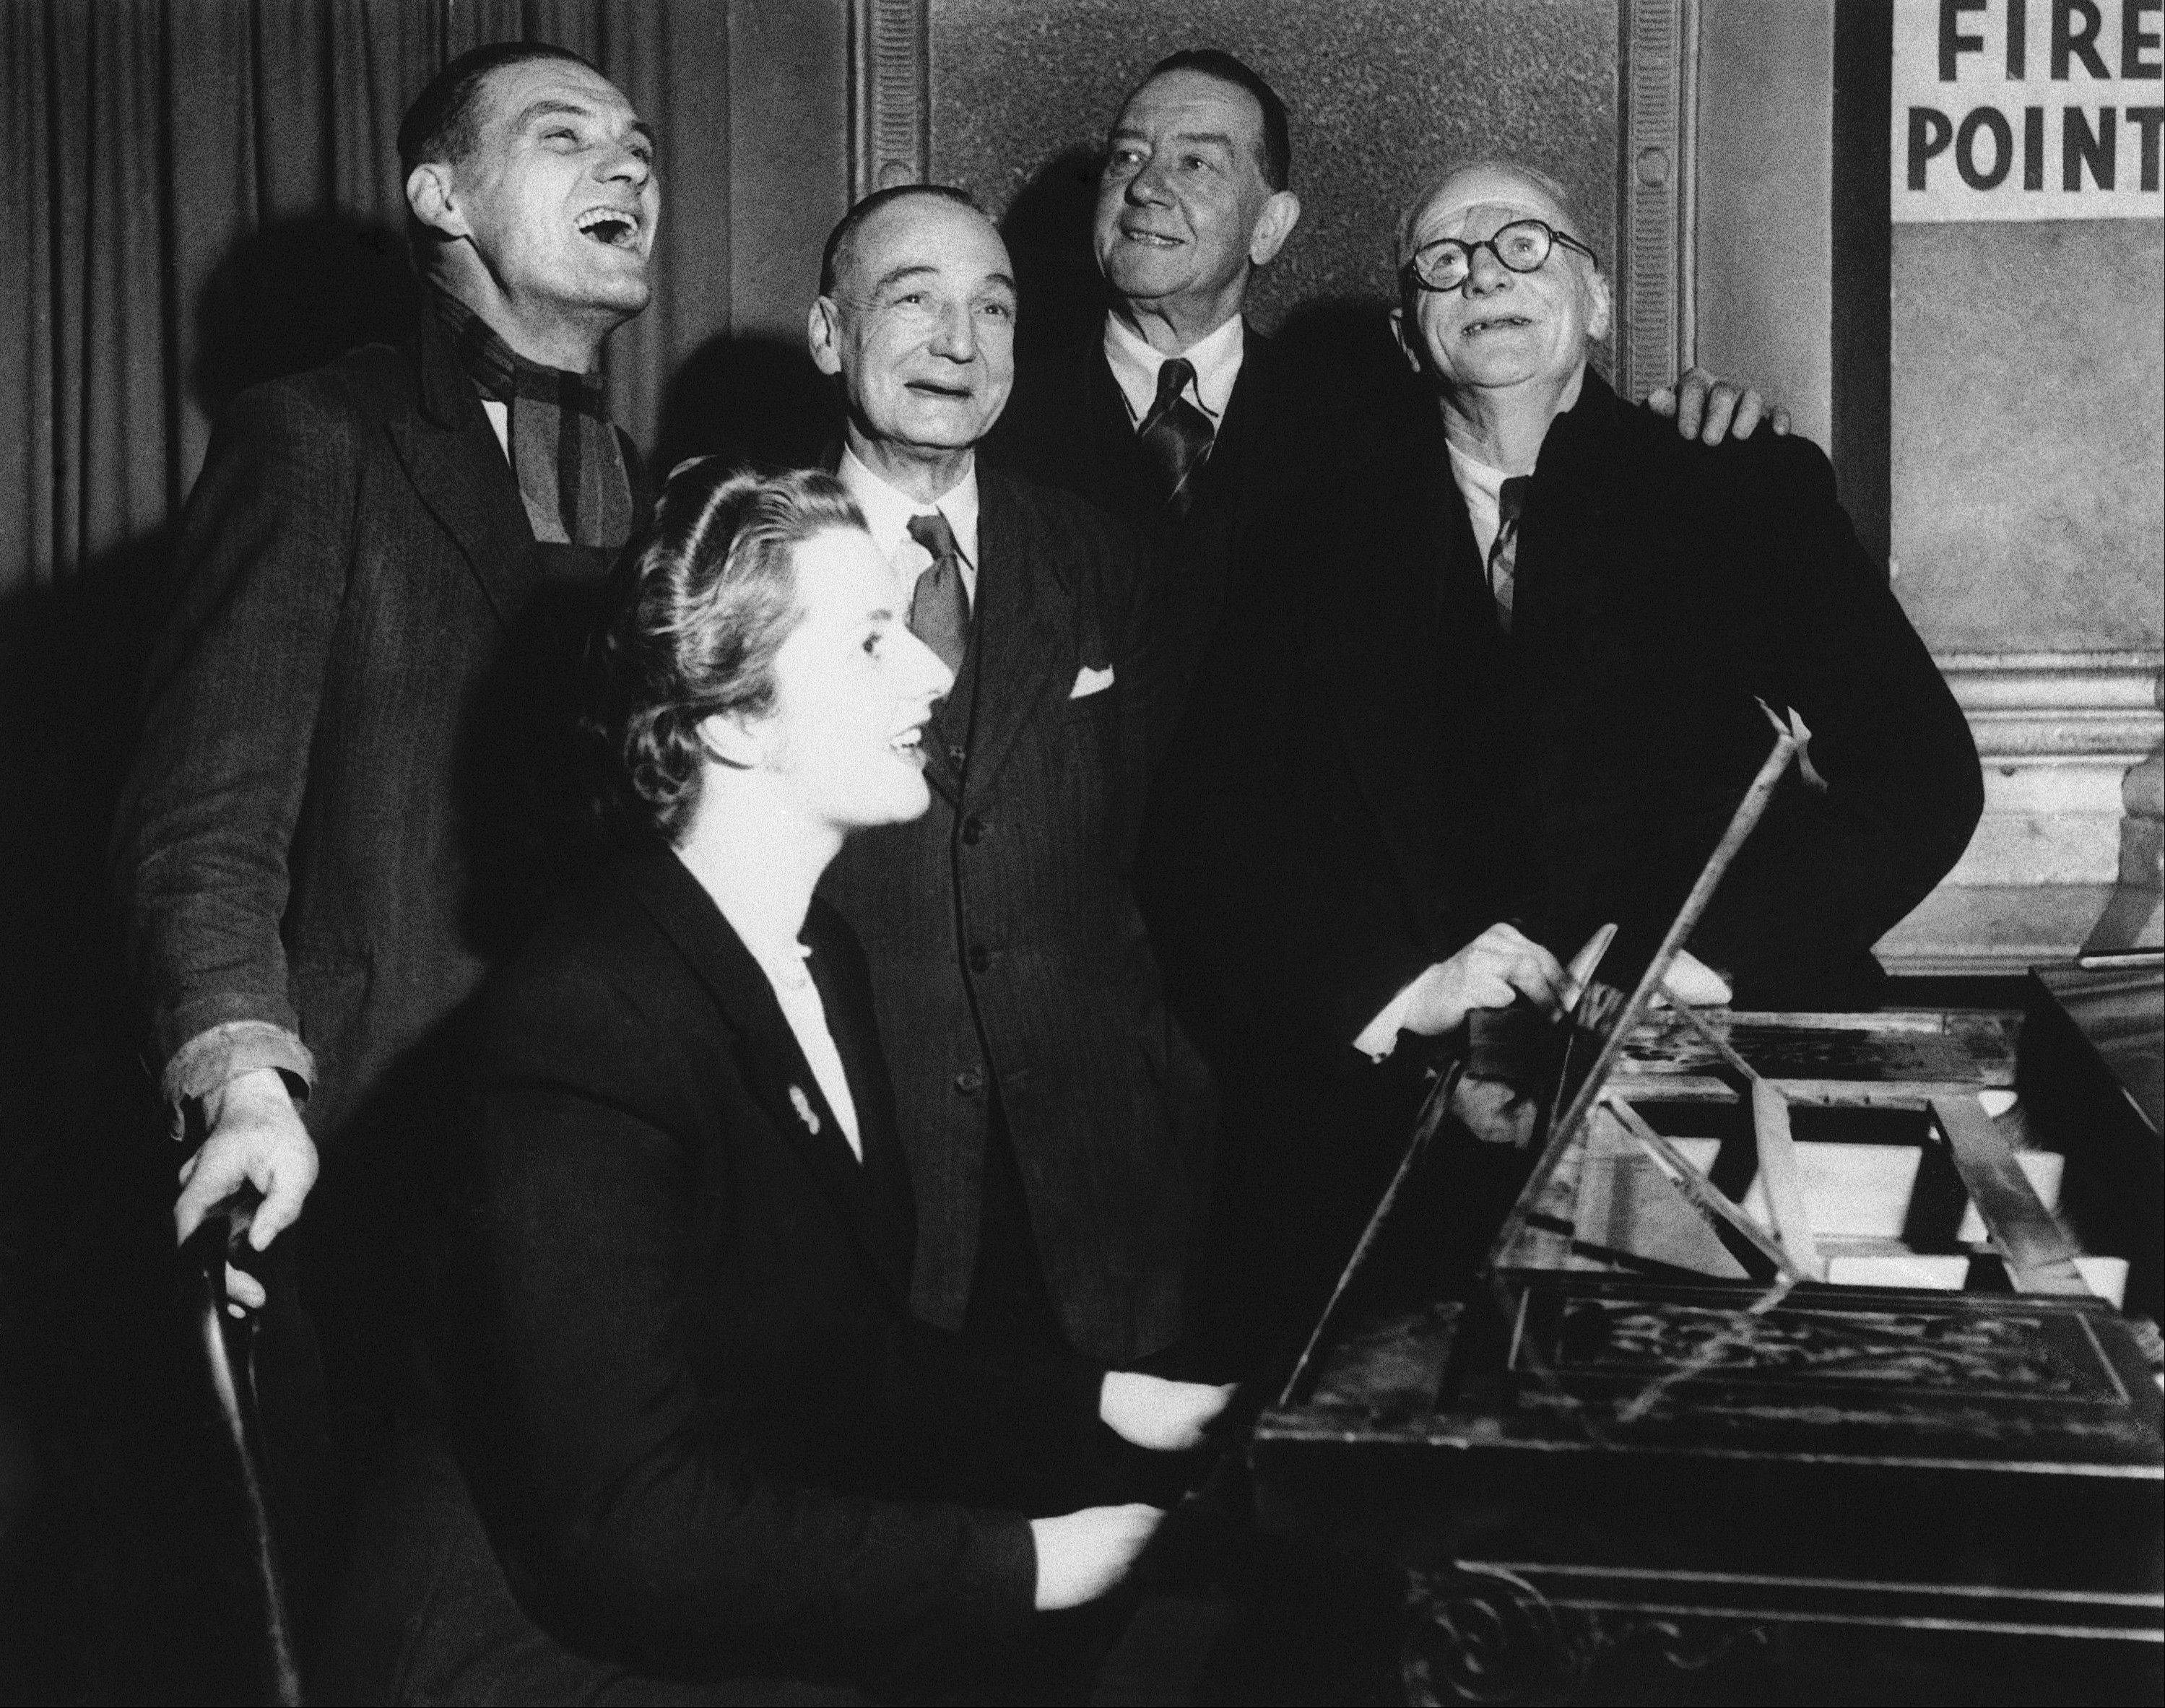 In a 1950 file photo, Conservative candidate at 23 years old and holder of an Oxford diploma, Margaret Roberts, later Thatcher, accompanies four voters on the piano in a sing along after a brief political argument in the bar of the Bull Inn, Dartford, England in 1950. Thatchers former spokesman, Tim Bell, said that the former British Prime Minister Margaret Thatcher died Monday morning, April 8, 2013, of a stroke. She was 87.